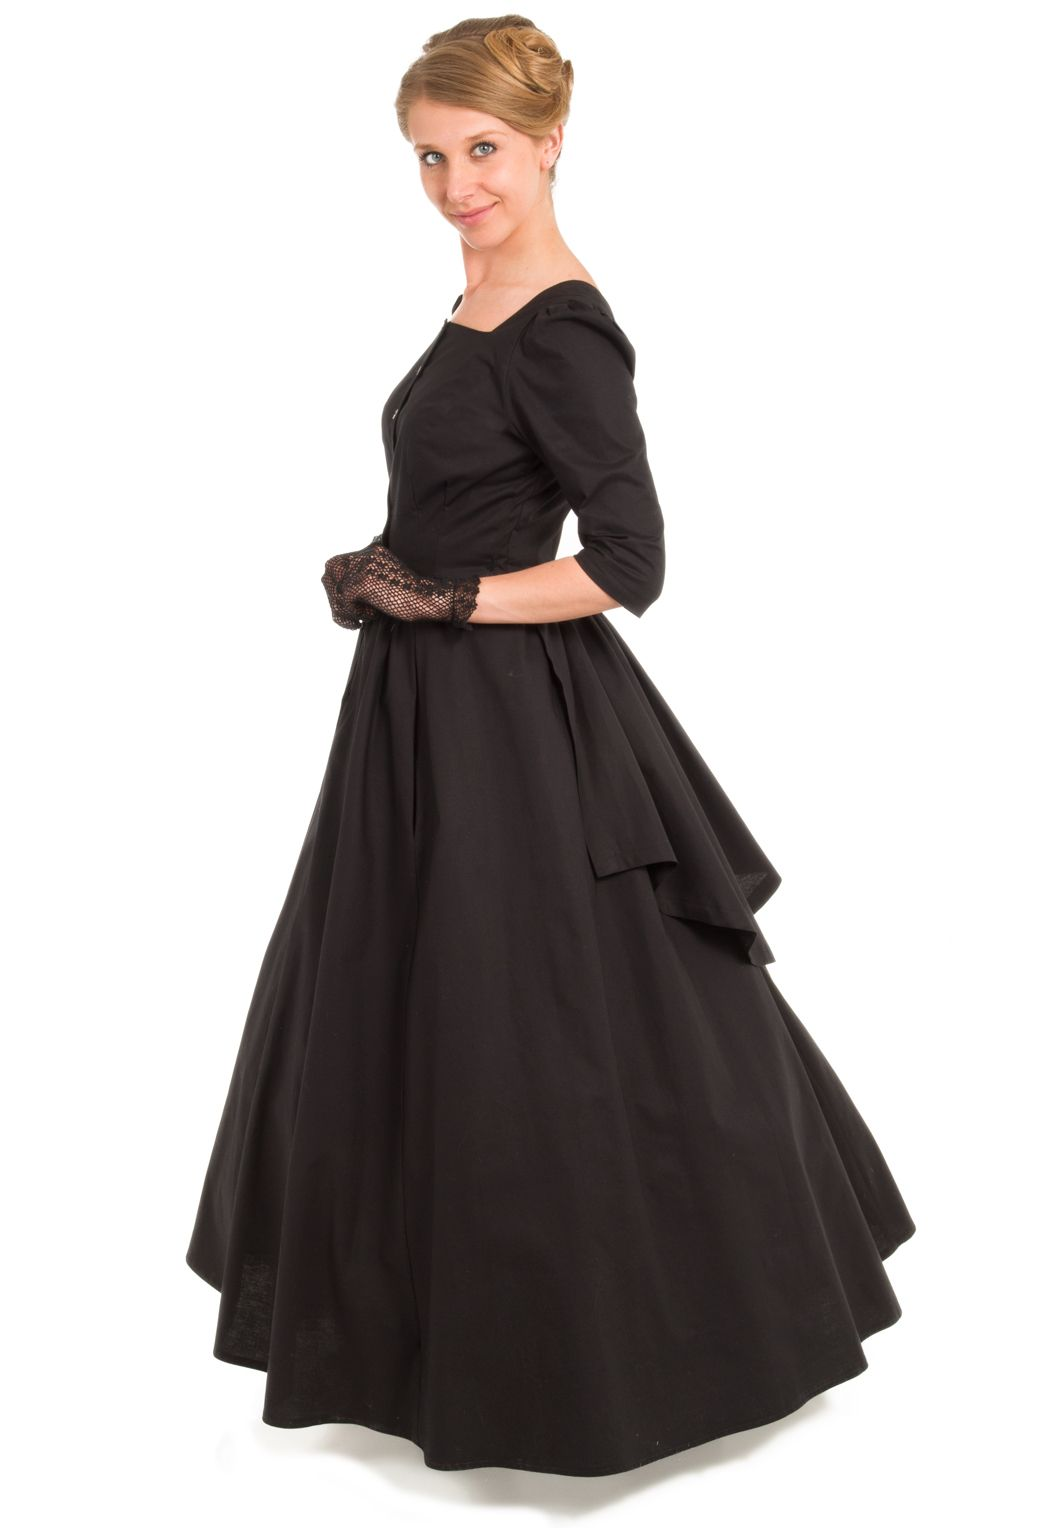 Victorian Style Cotton Dress By Recollections - like the ...